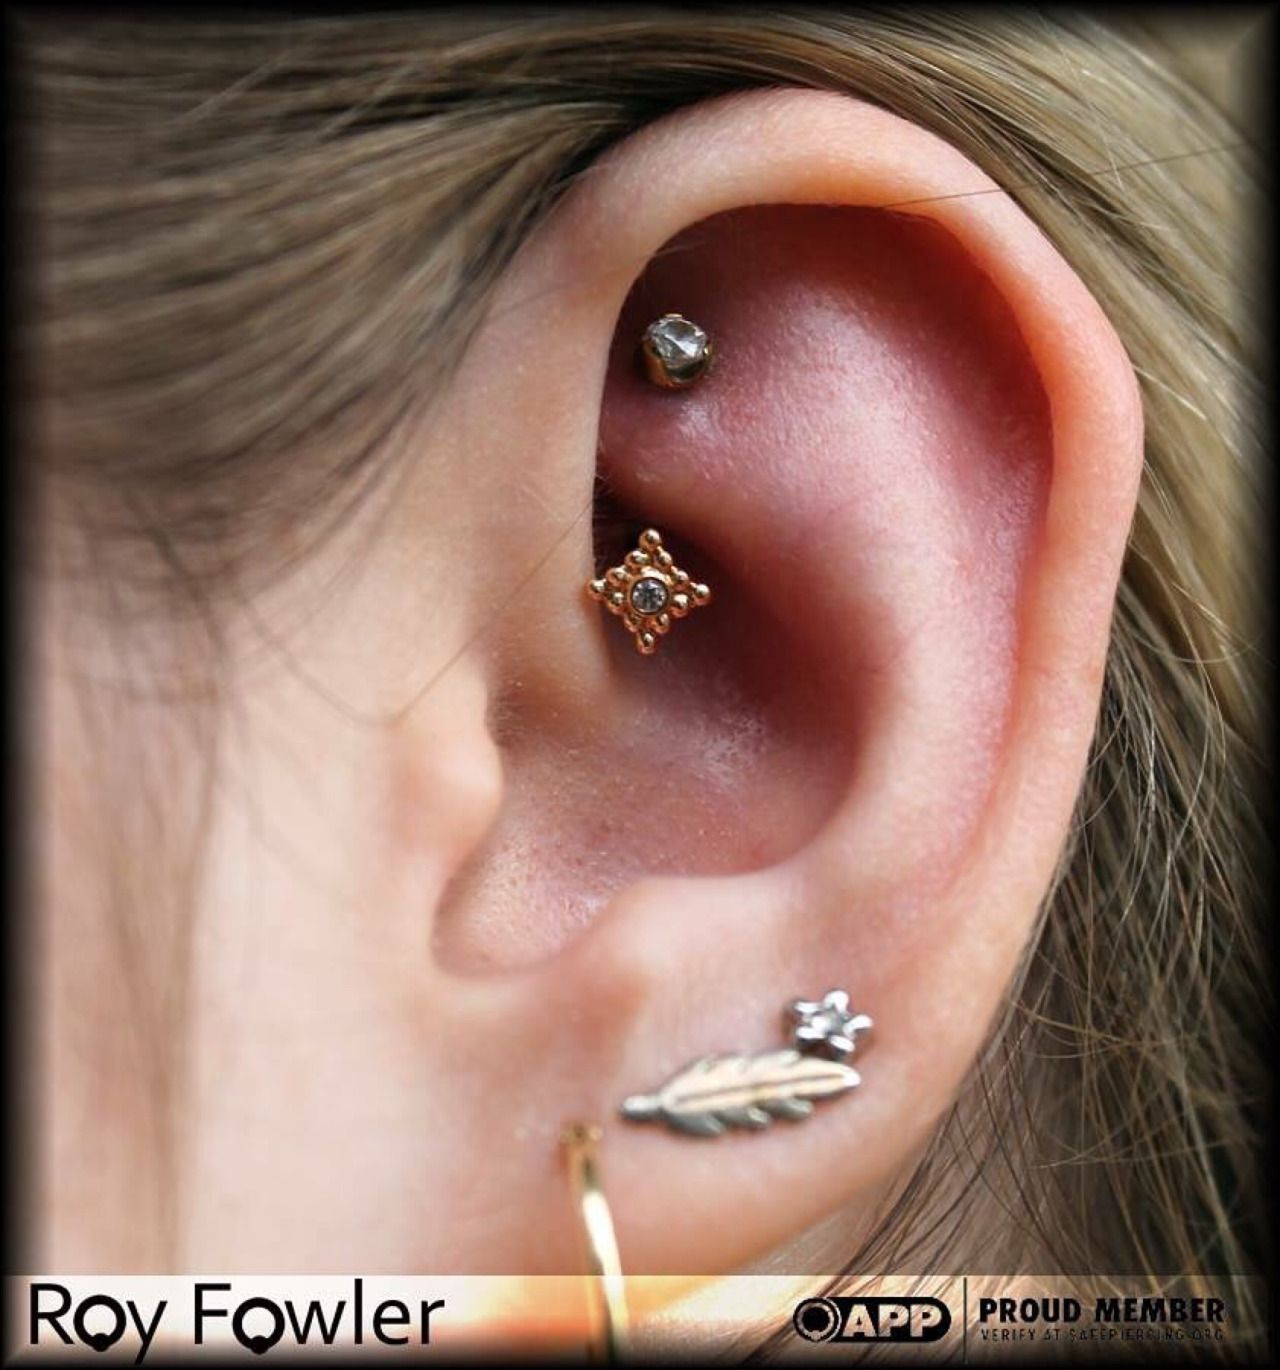 Upper nose piercing  Pin by Jess Mc on Ear Stabs u Adornments  Pinterest  Rook piercing